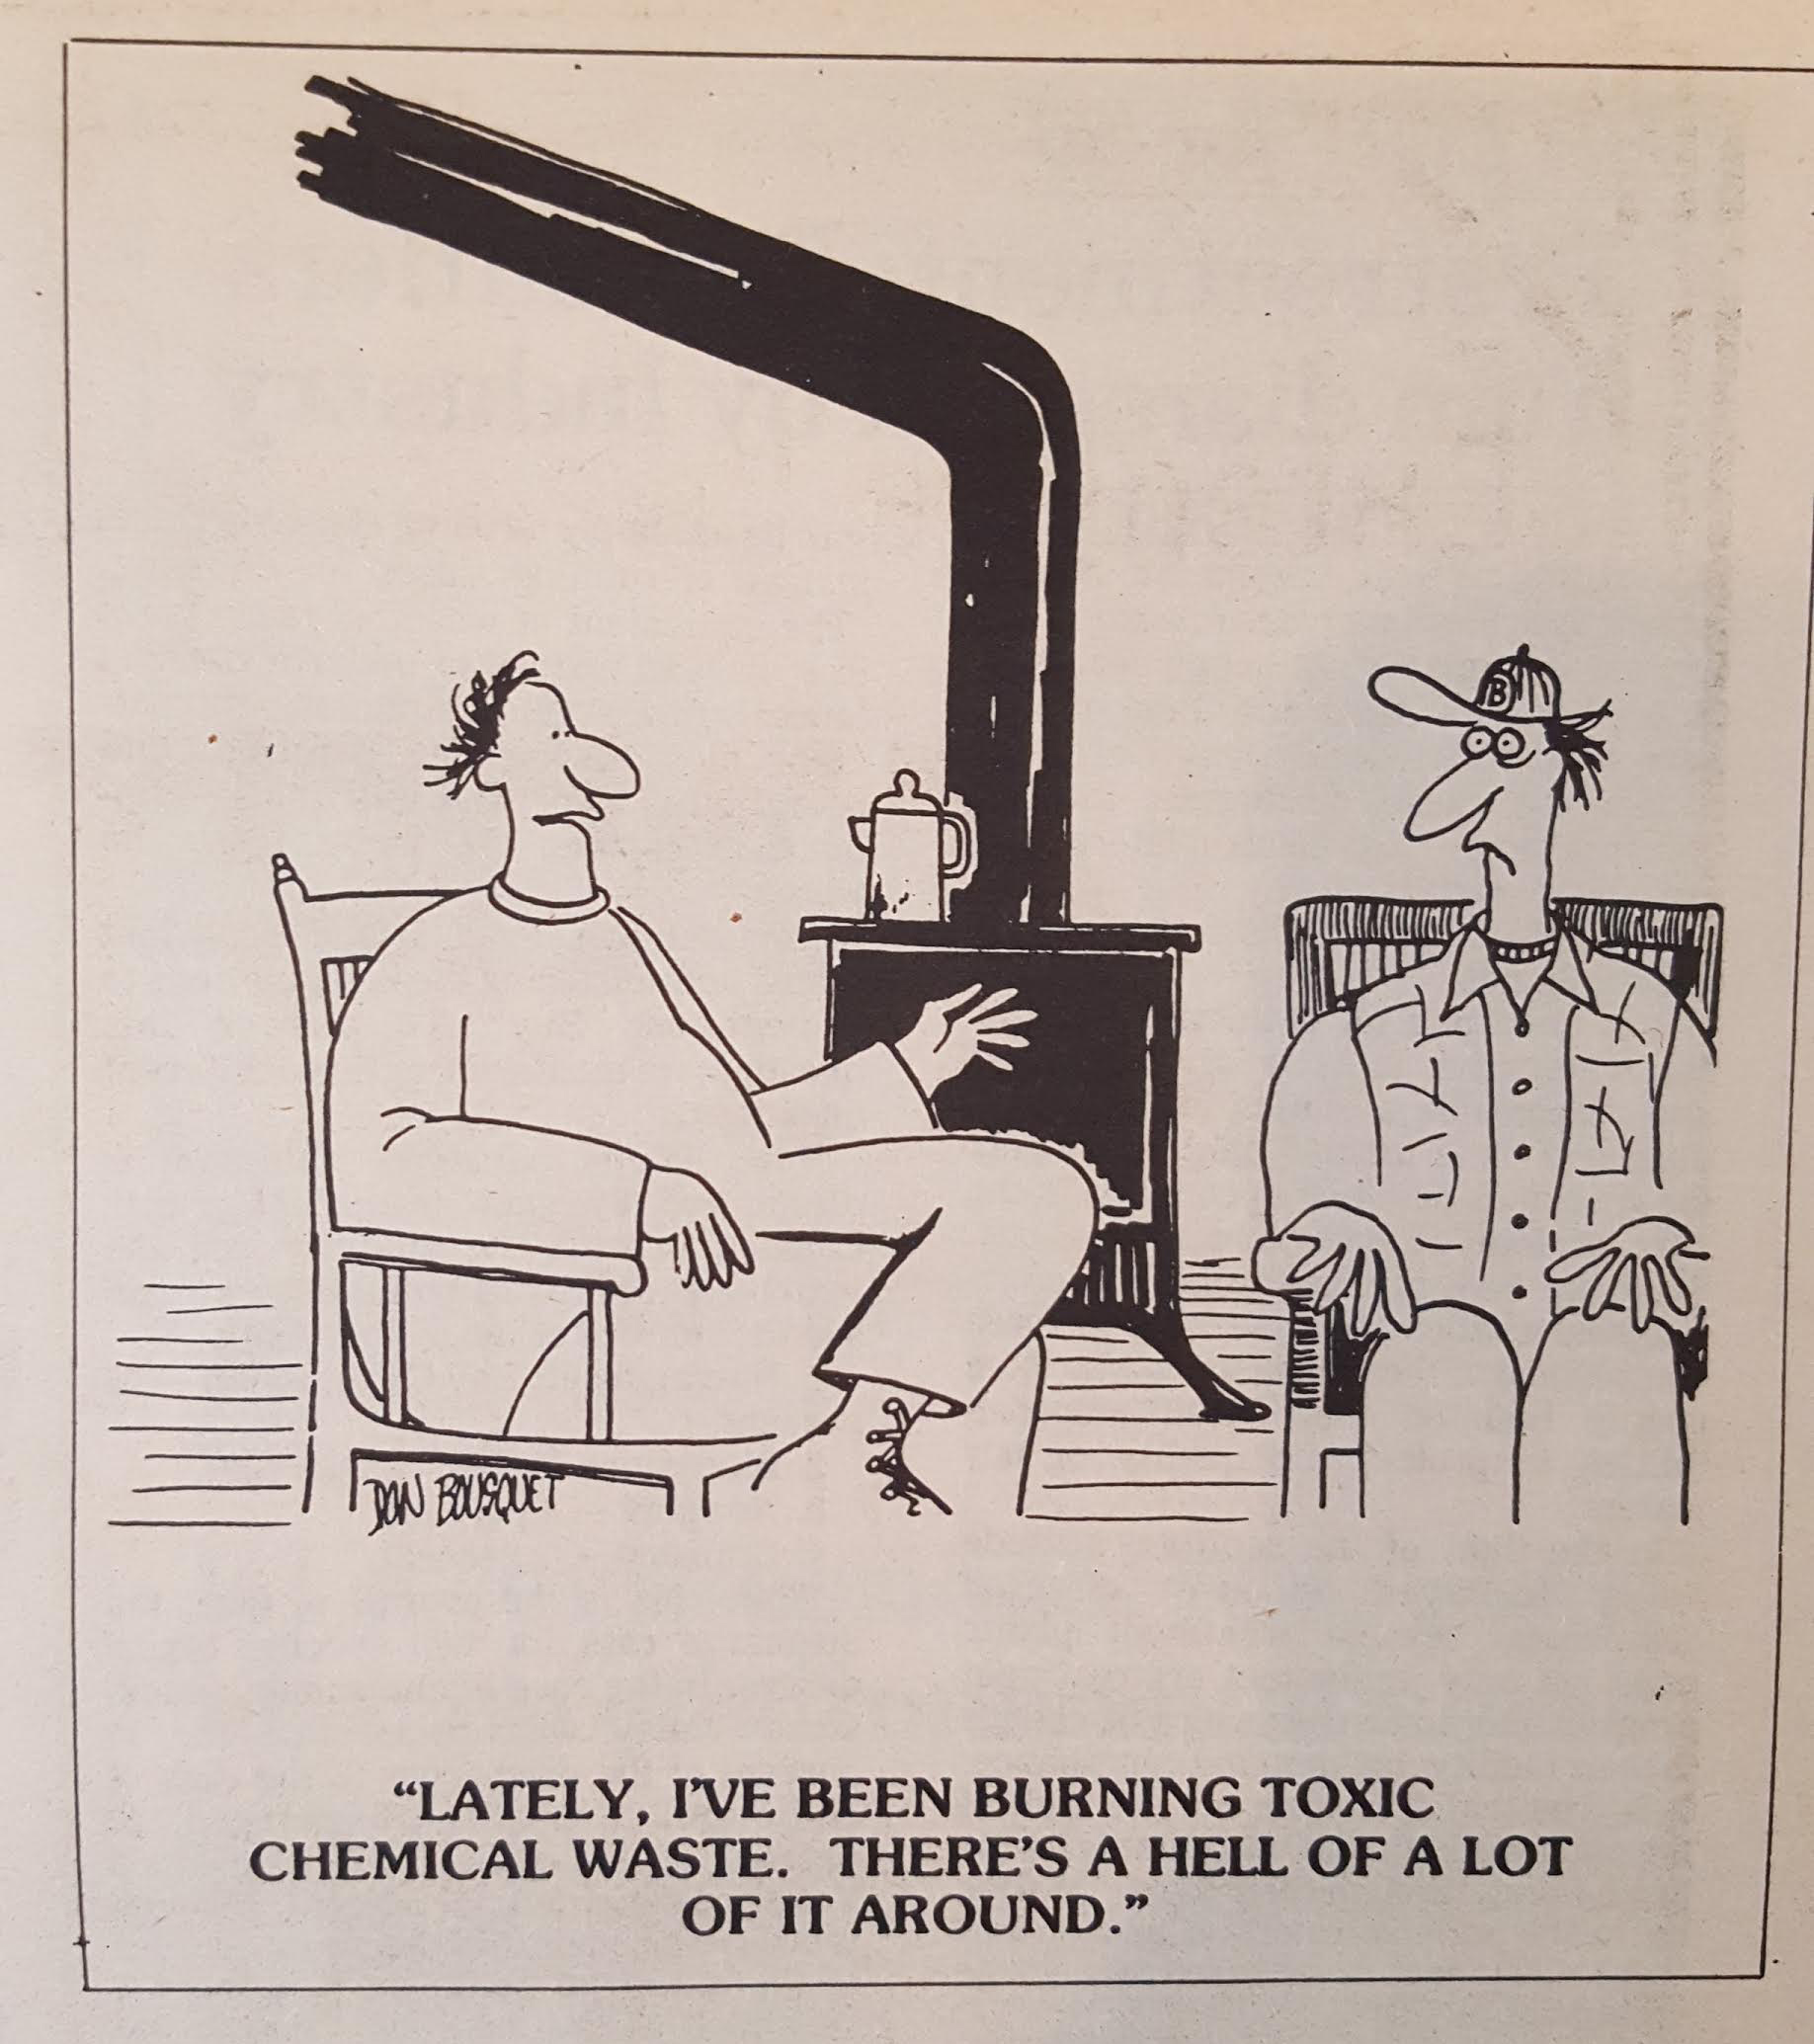 Don Bousquet cartoon about the hazards of incineration